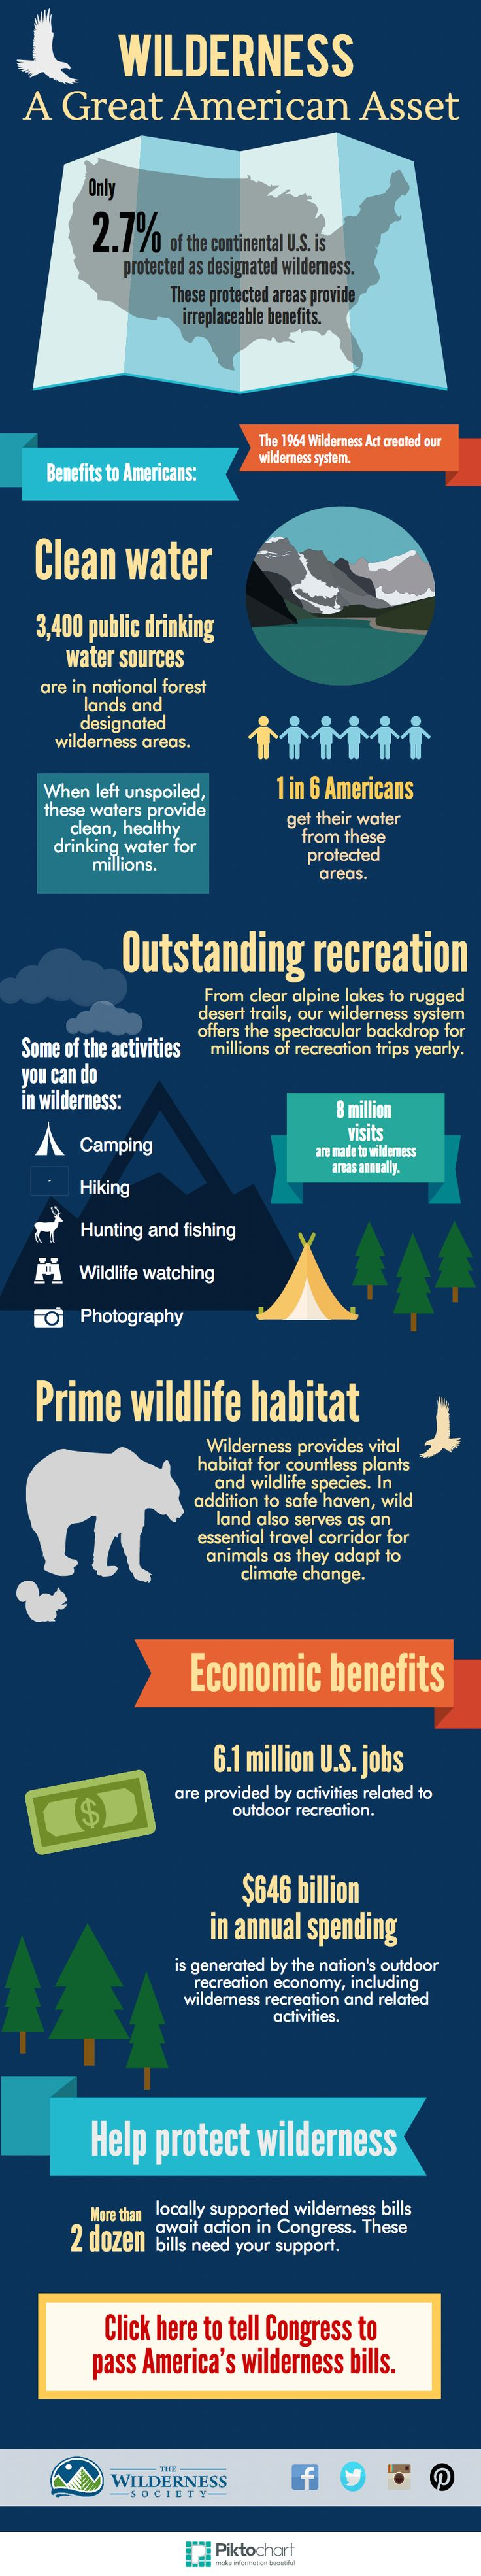 The Wilderness Act celebrates its 50th anniversary this month. The act created our National Wilderness Preservation System and a means by which Americans can protect wilderness. It is now considered one of America's greatest conservation achievements. In honor of the anniversary, our infographic explains some of the many benefits that our wilderness areas provide.